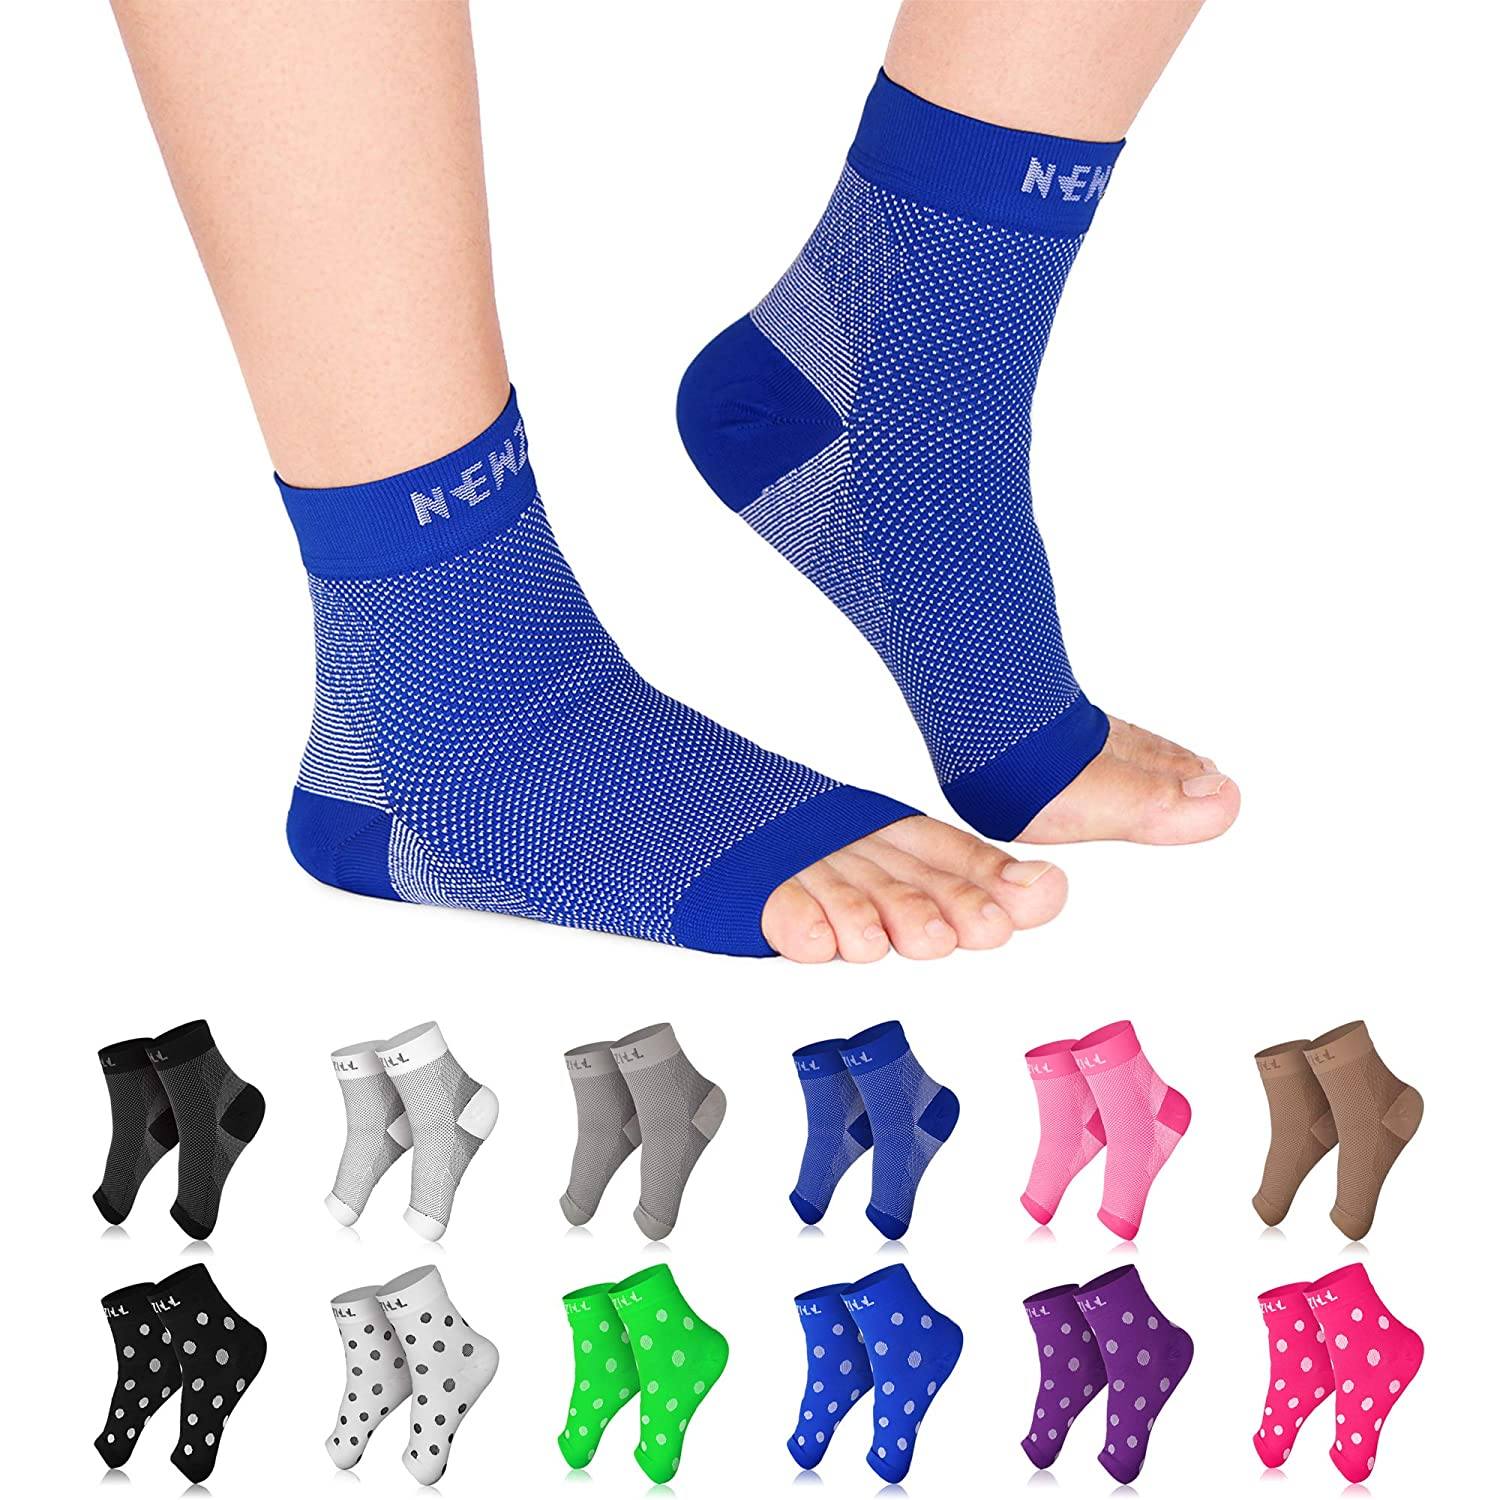 Best Women\\\\\\\'S Dress Shoes For Plantar Fasciitis 2020 Amazon.com: NEWZILL Plantar Fasciitis Socks with Arch Support